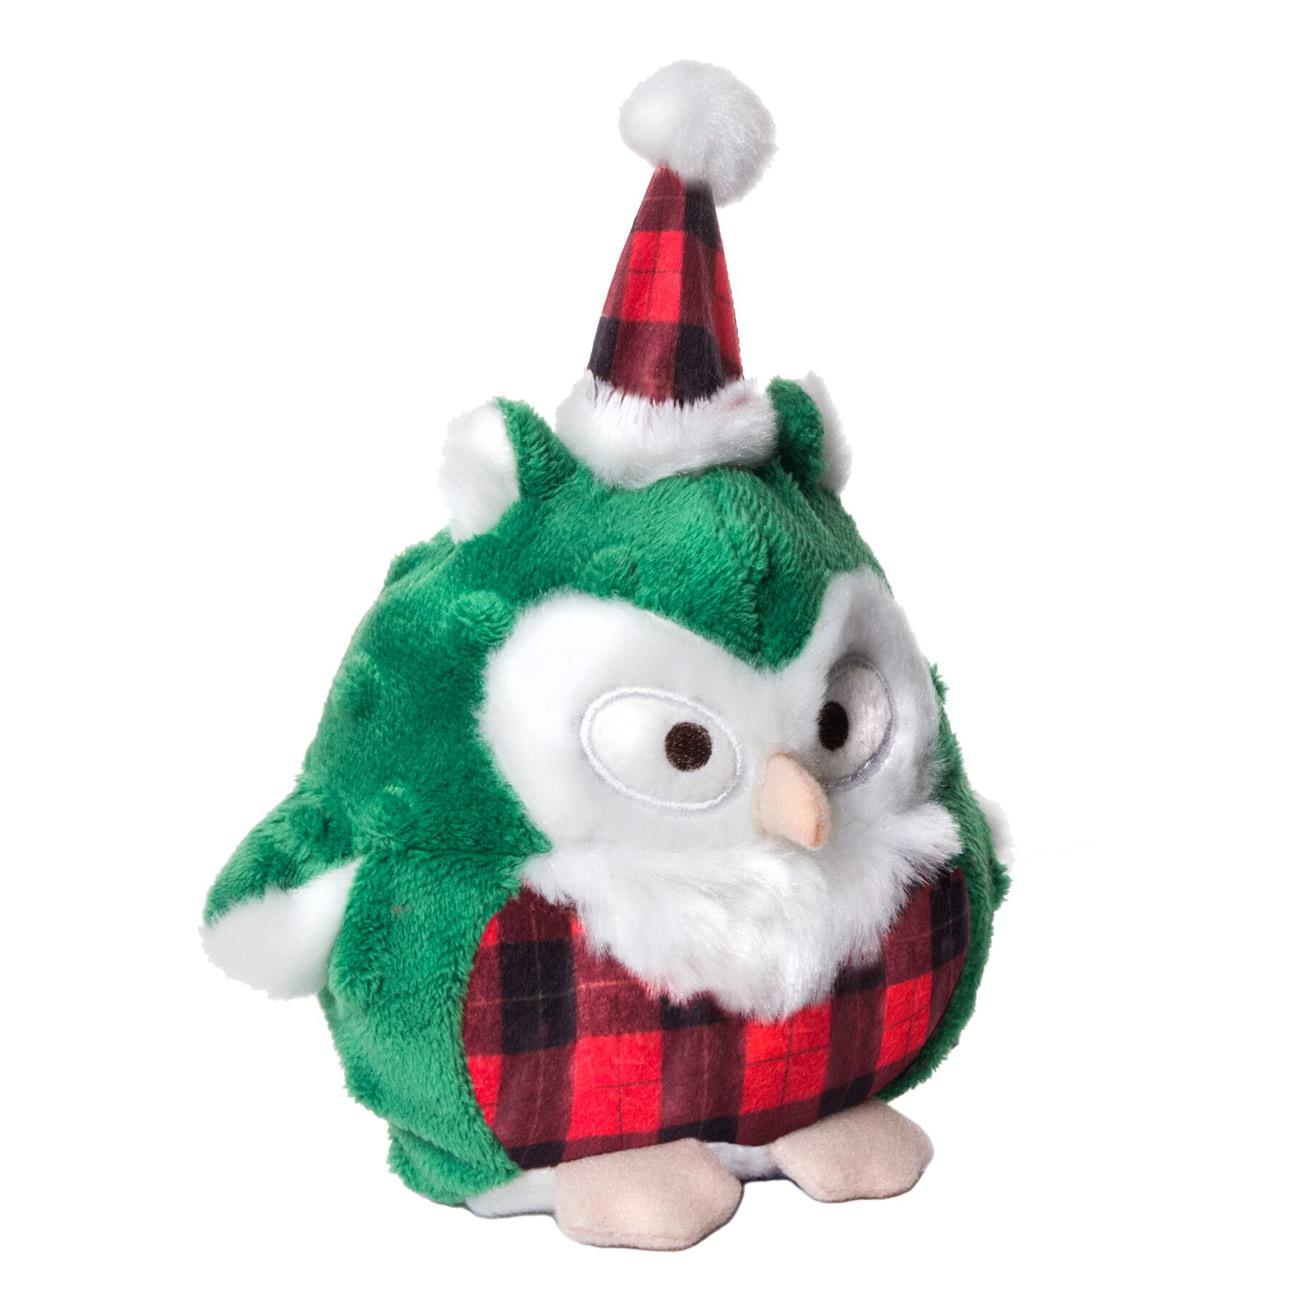 Charming Christmas Hoots Dog Toy - Green